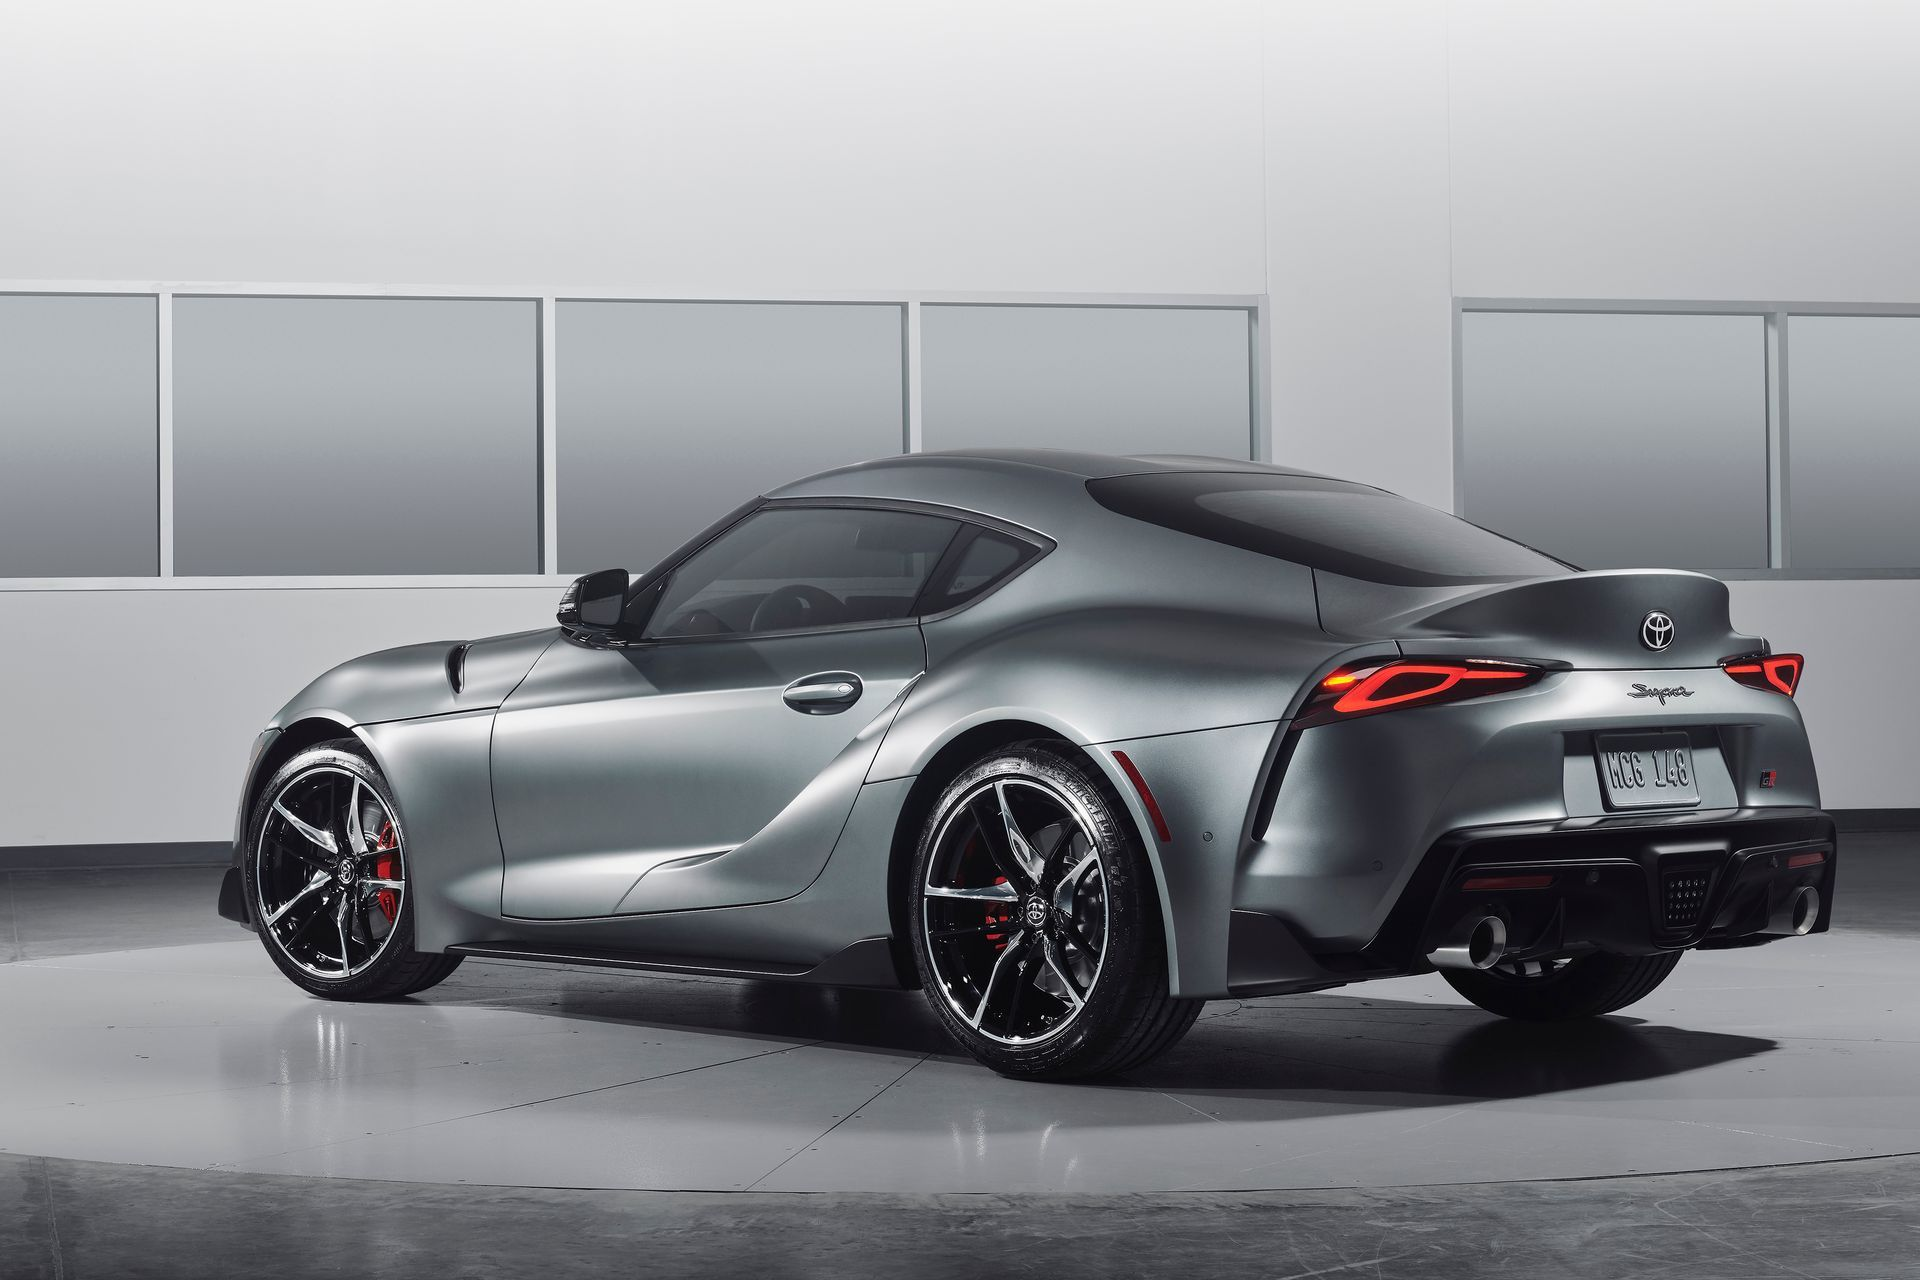 Toyota Supra Gets New Life Totally Lit Sports Car Debuts At 2019 Detroit Auto Show Toyota Supra New Toyota Supra Sports Car